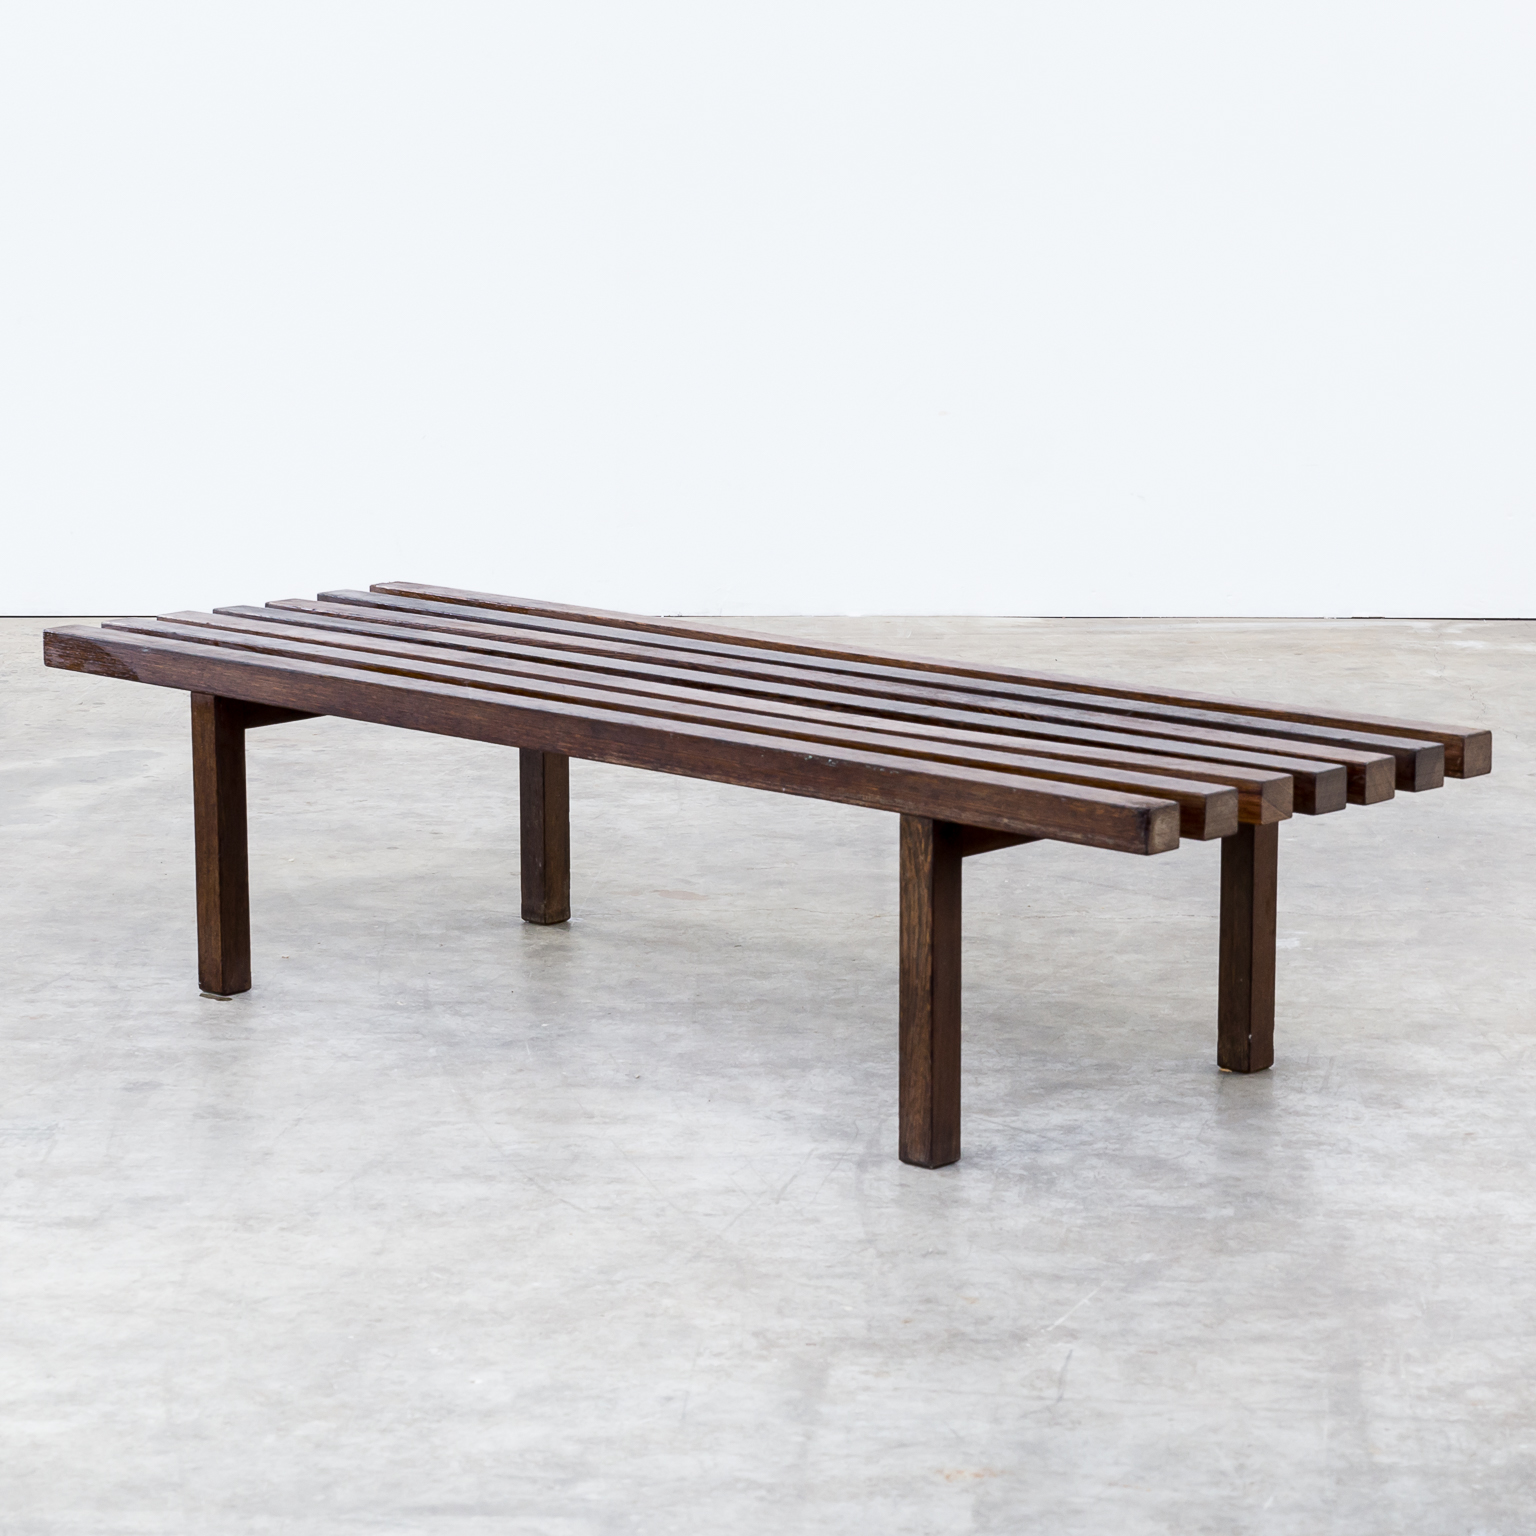 60s Weng Slatted Bench Museum Bench Barbmama